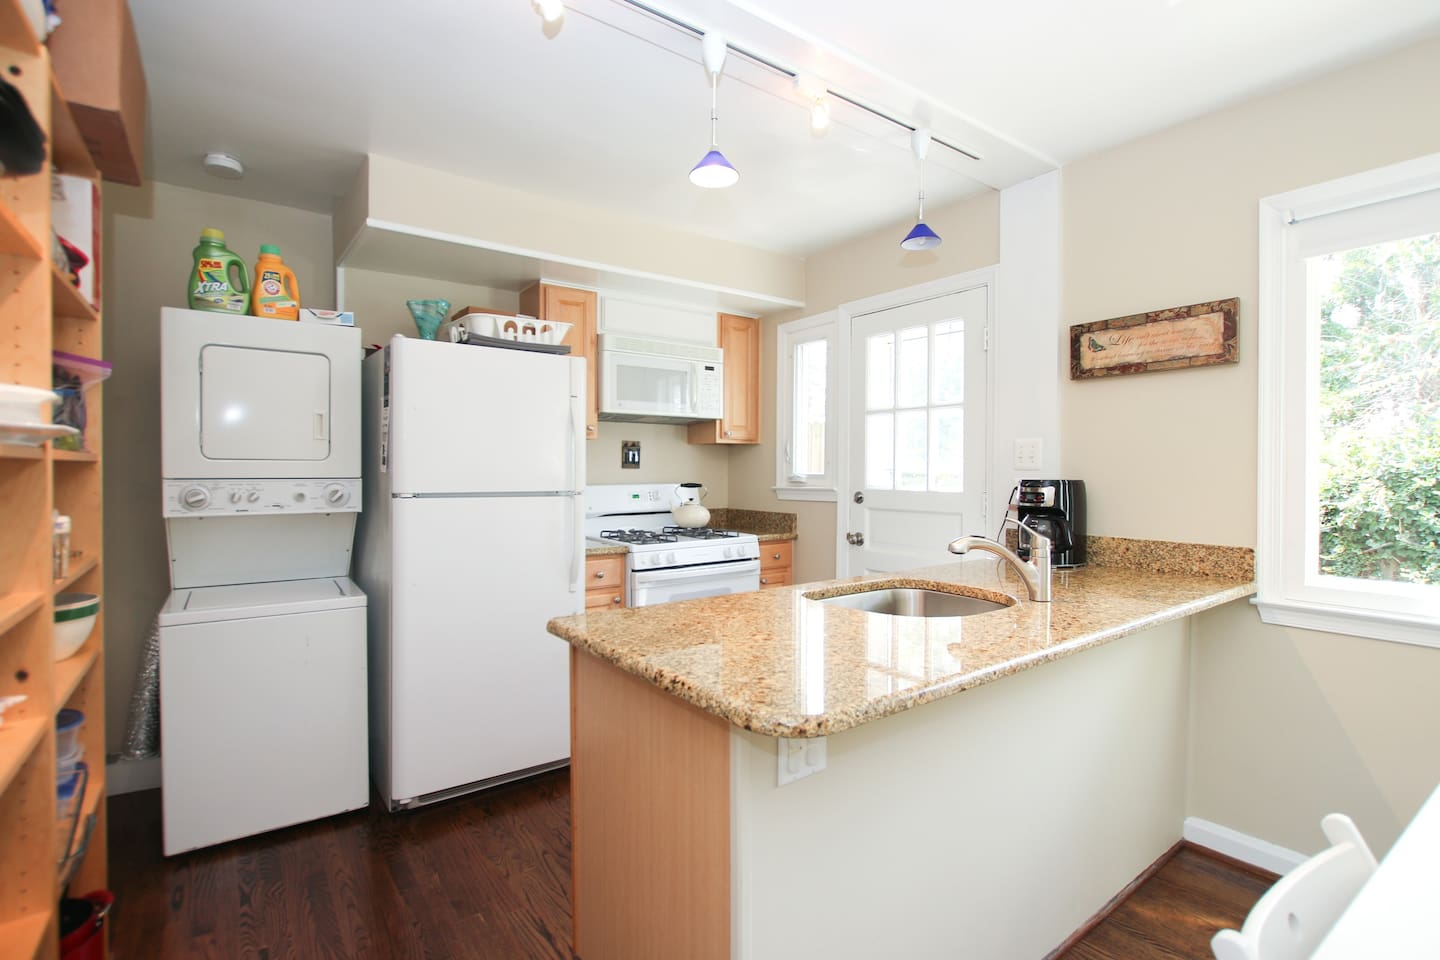 Kitchen with beautiful granite counter, gas stove, dishwasher, full fridge and washer/dryer